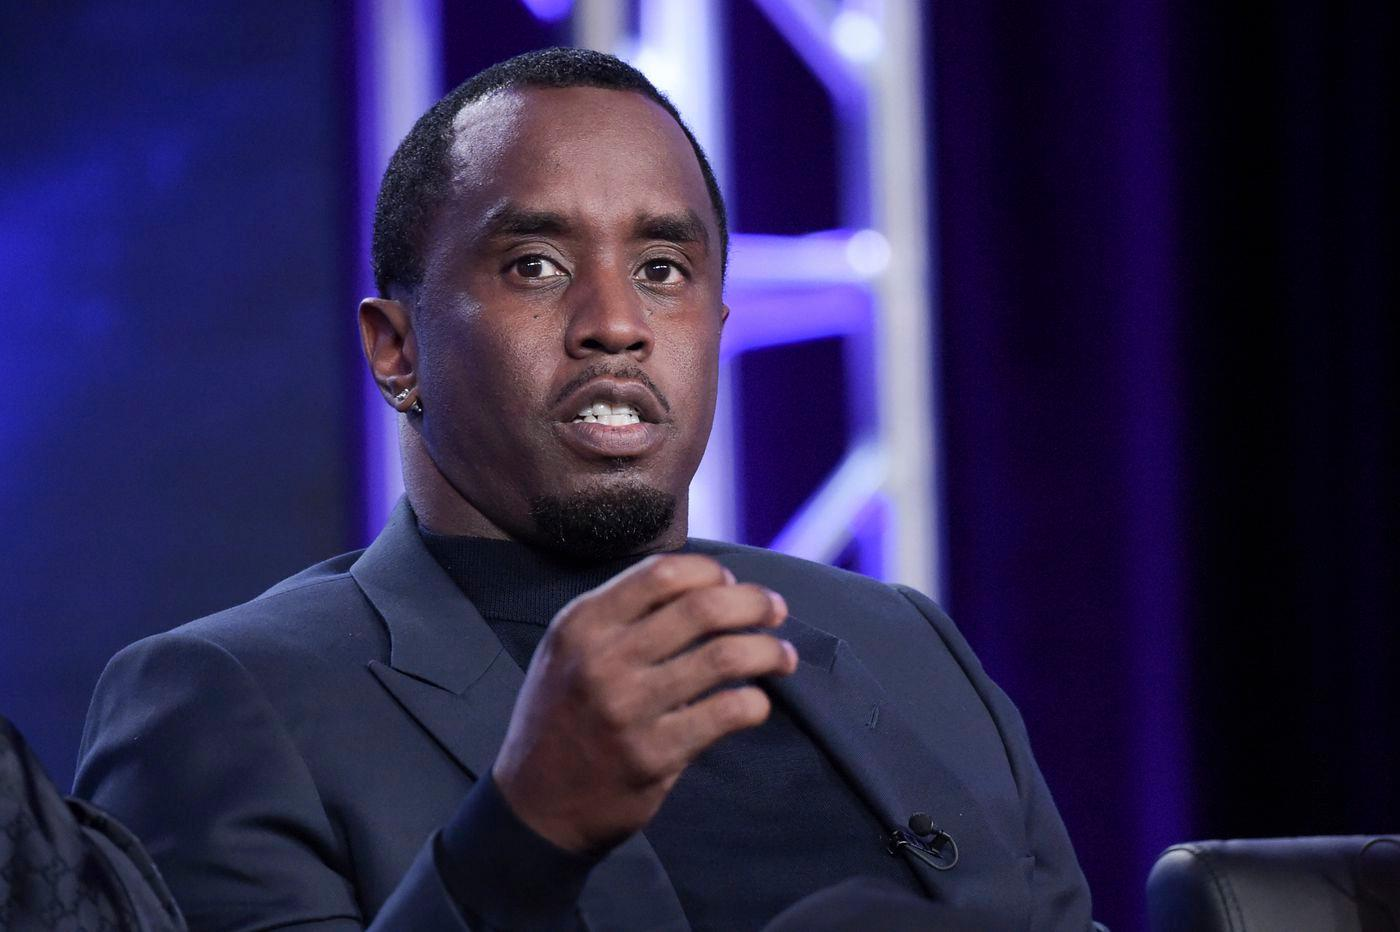 Diddy Wished A Happy Anniversary To Someone Special - See His Message